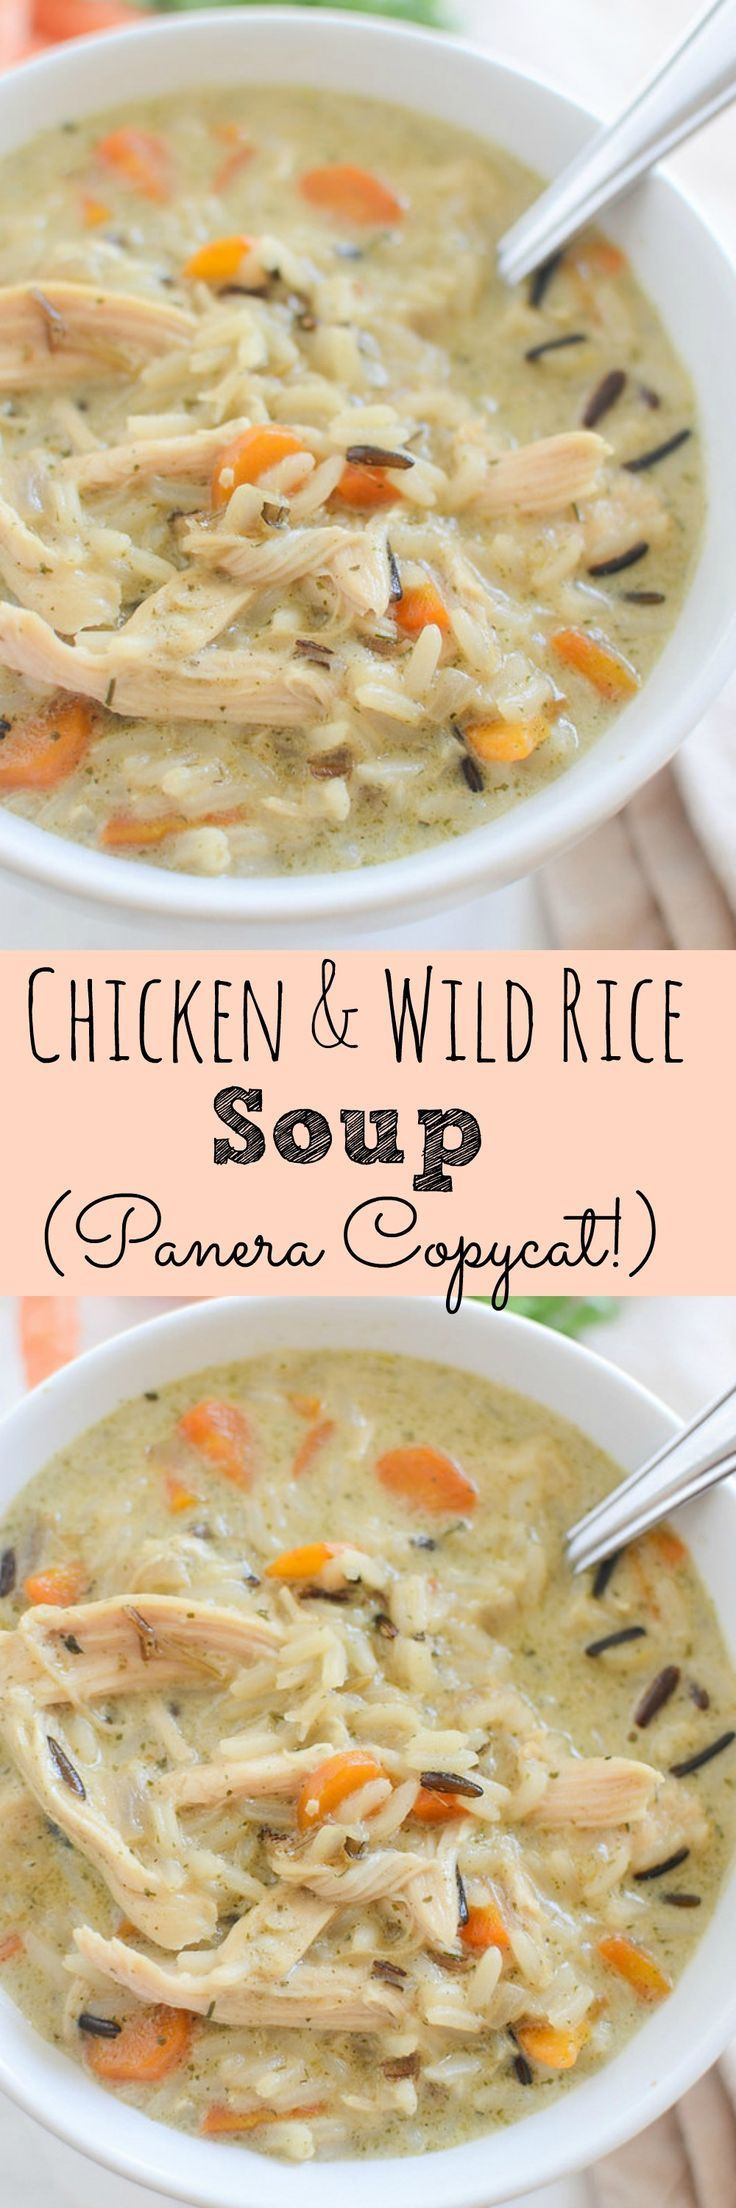 Chicken And Wild Rice Soup Recipe  39 best images about Favorite Recipes on Pinterest